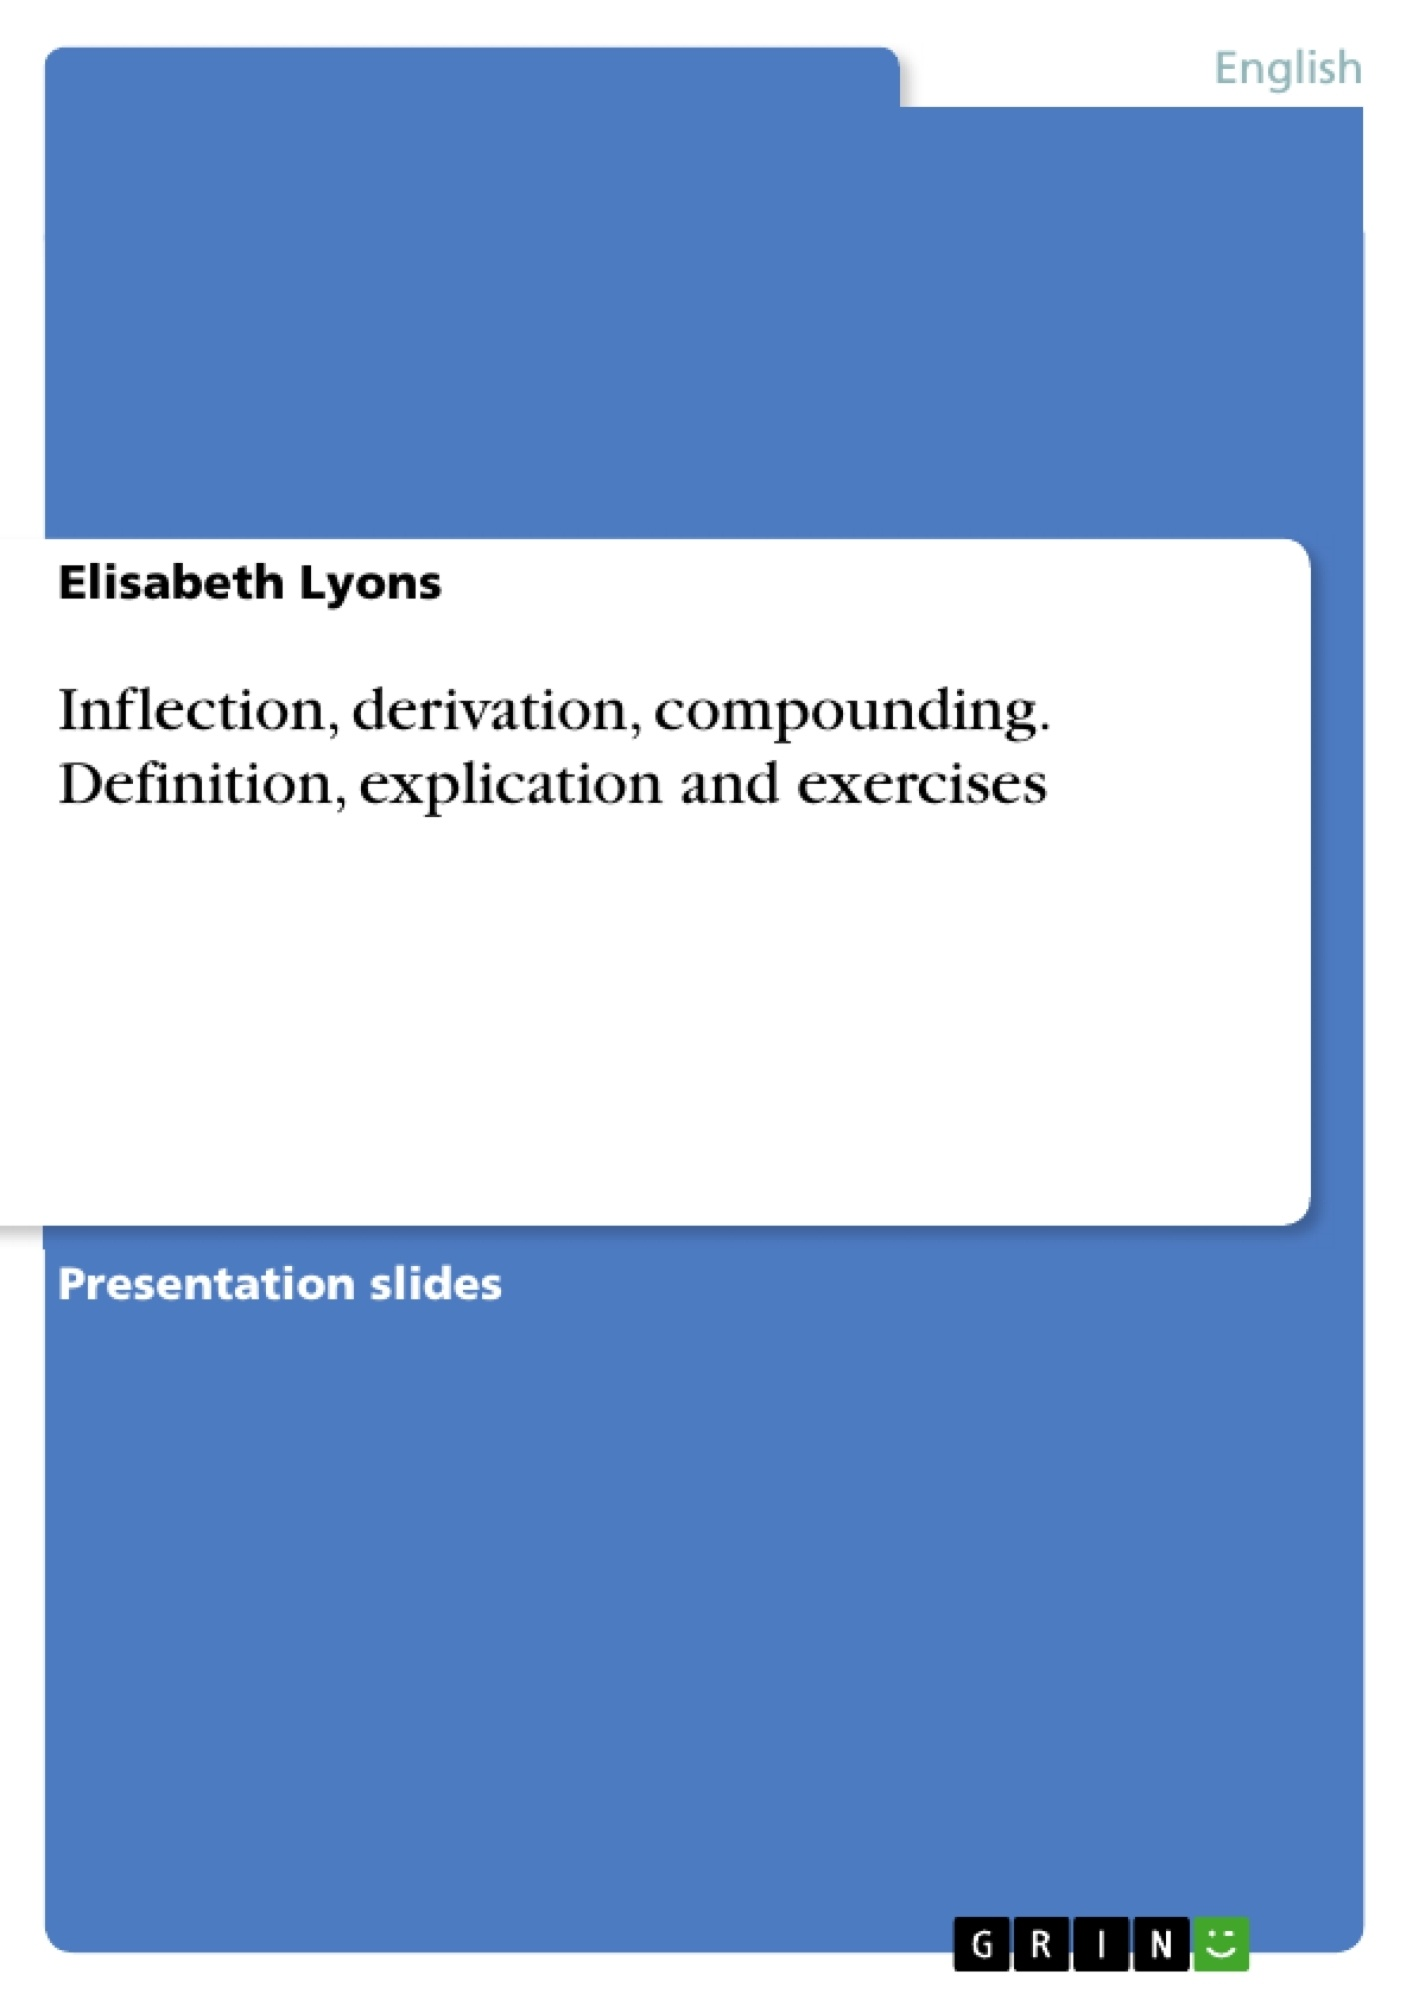 Title: Inflection, derivation, compounding. Definition, explication and exercises